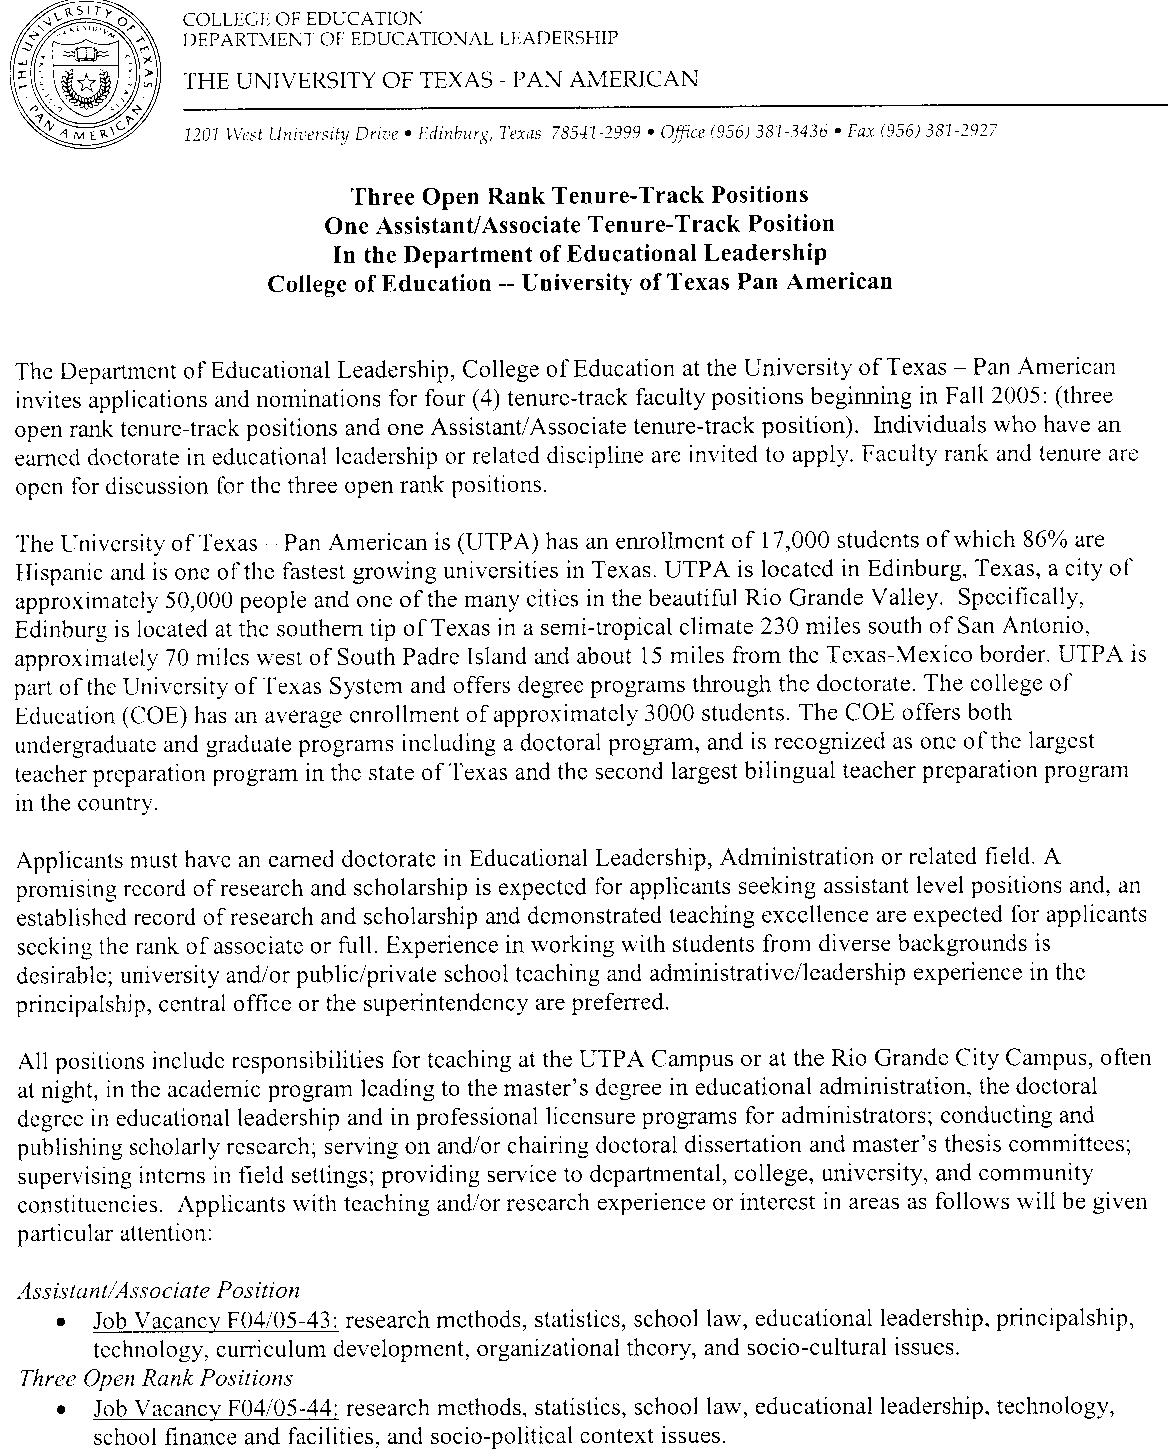 Sample Recommendation Letter For Tenure Track Position | Docoments ...